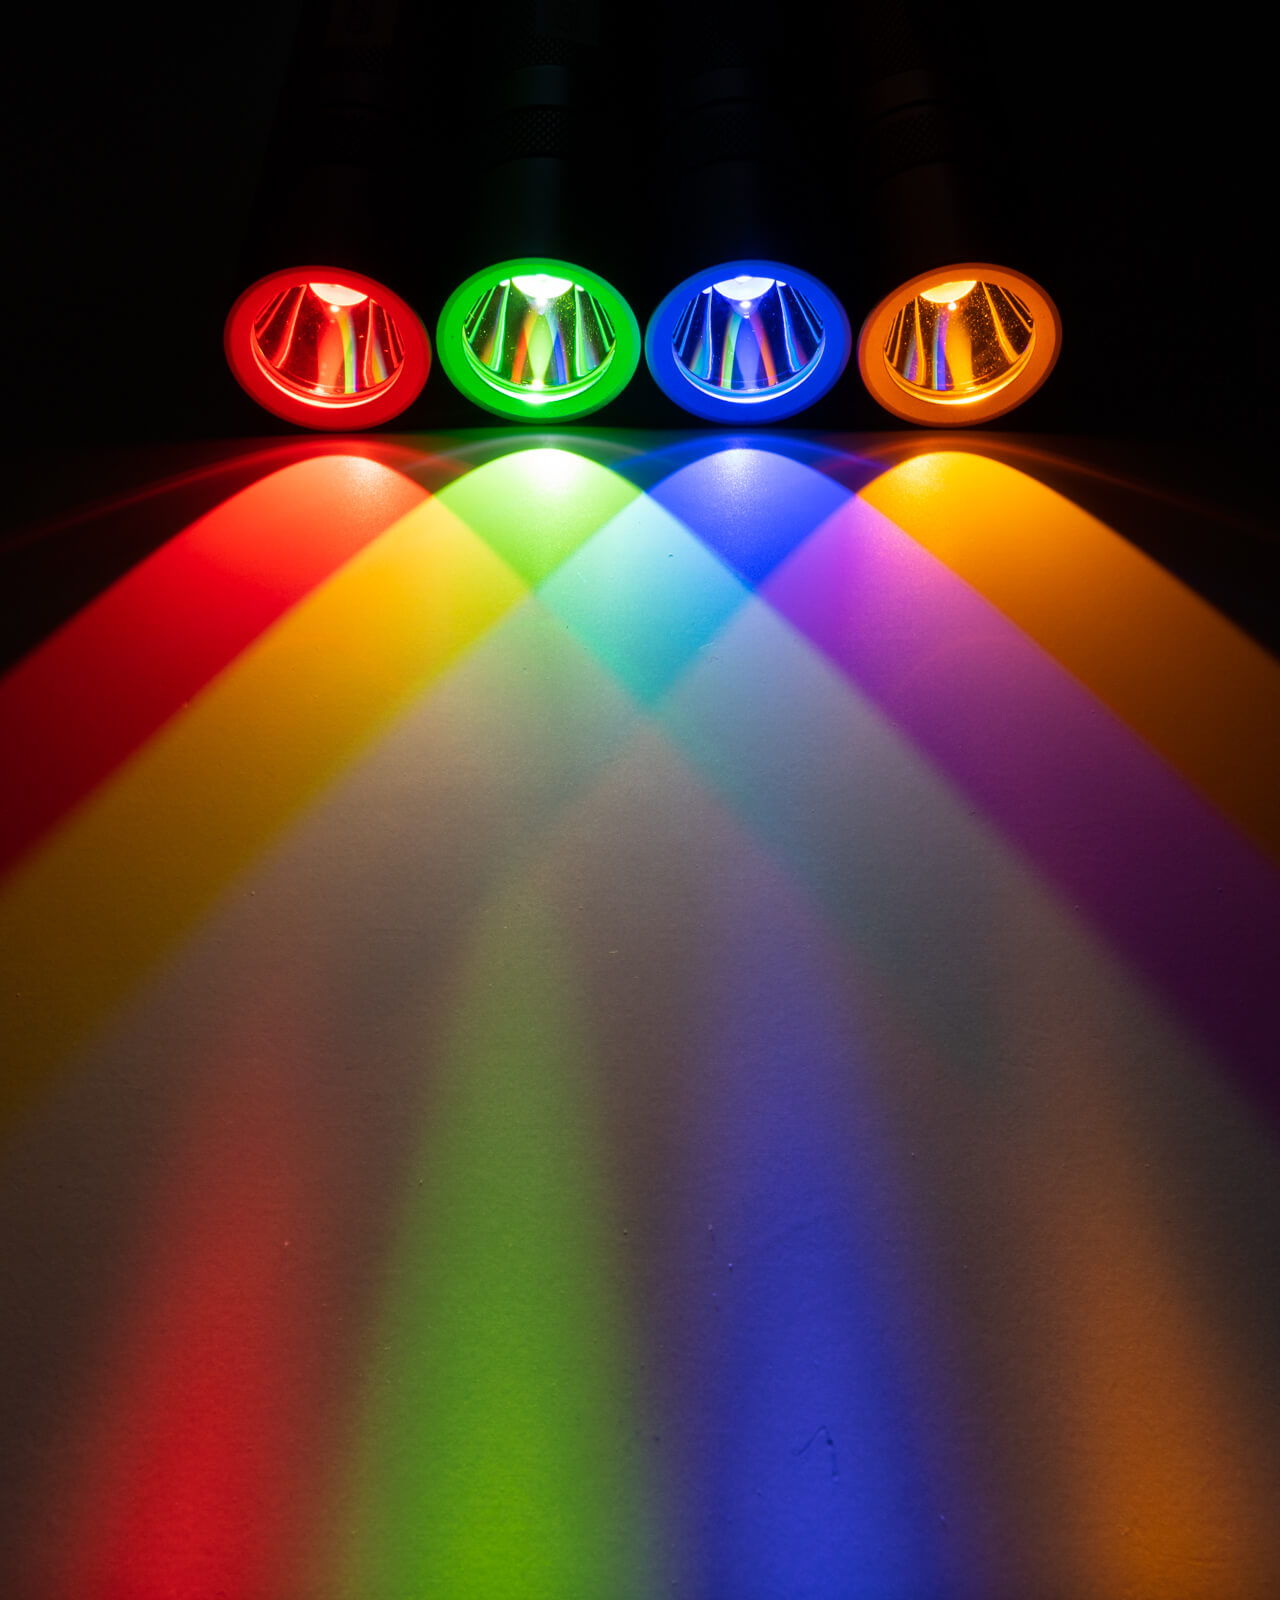 Convoy S2+ torches. with Osram CSLNM1.23 (Red), F1 (Green broad spectrum), .14 (Blue), and .FY (Orange-Yellow broad spectrum) emitters.